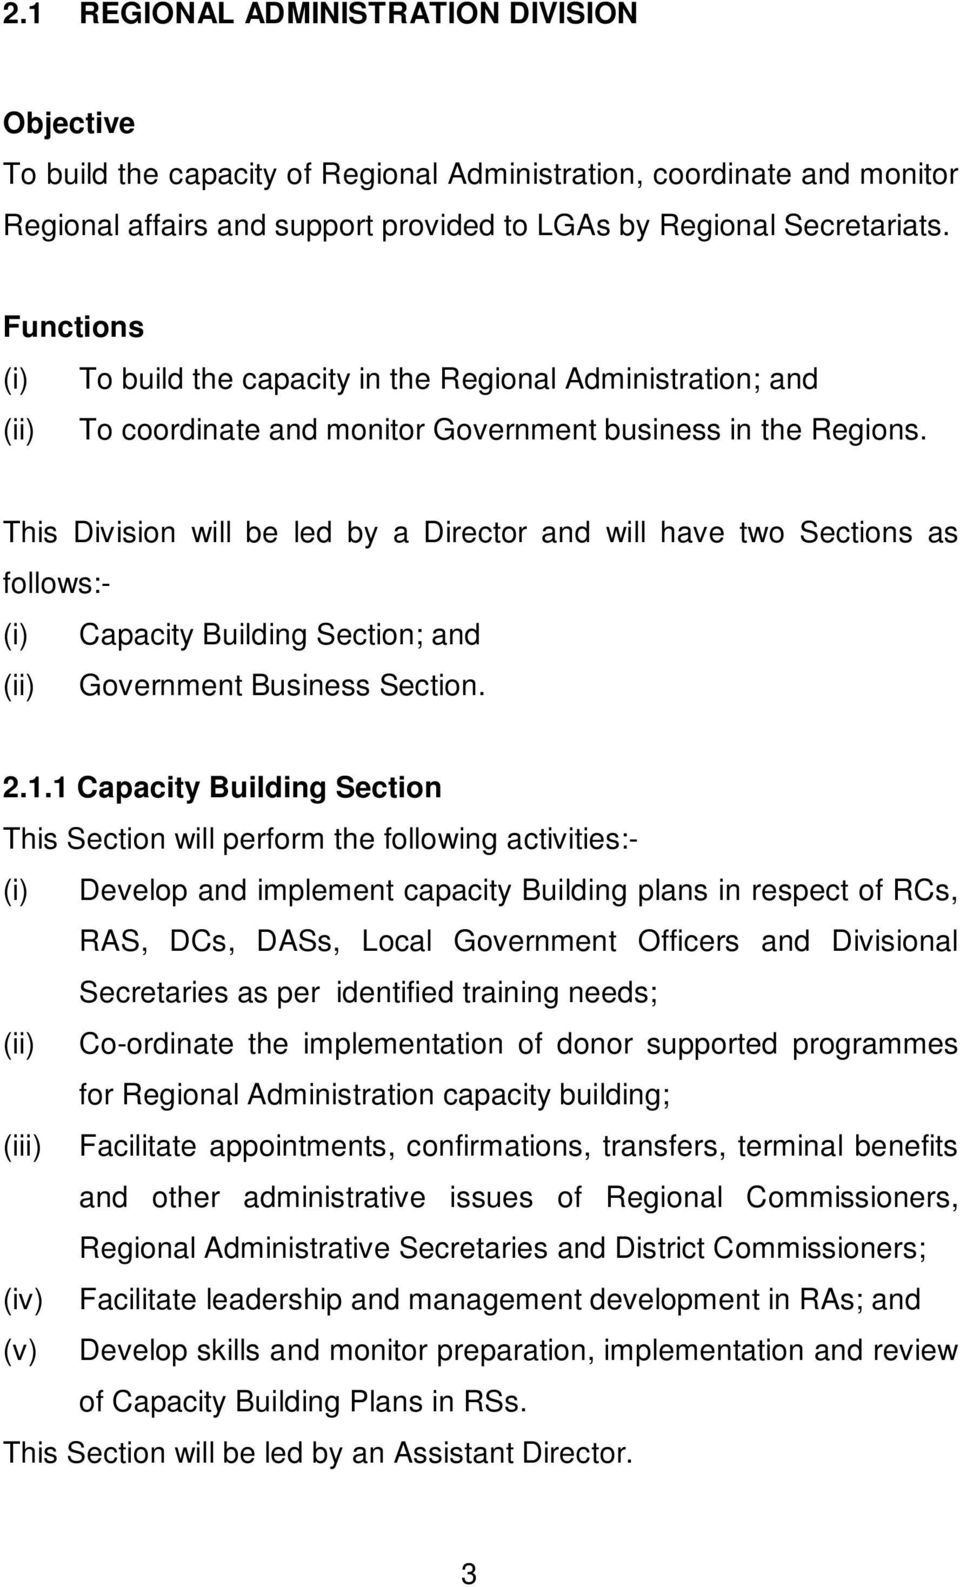 This Division will be led by a Director and will have two Sections as follows:- (i) Capacity Building Section; and (ii) Government Business Section. 2.1.